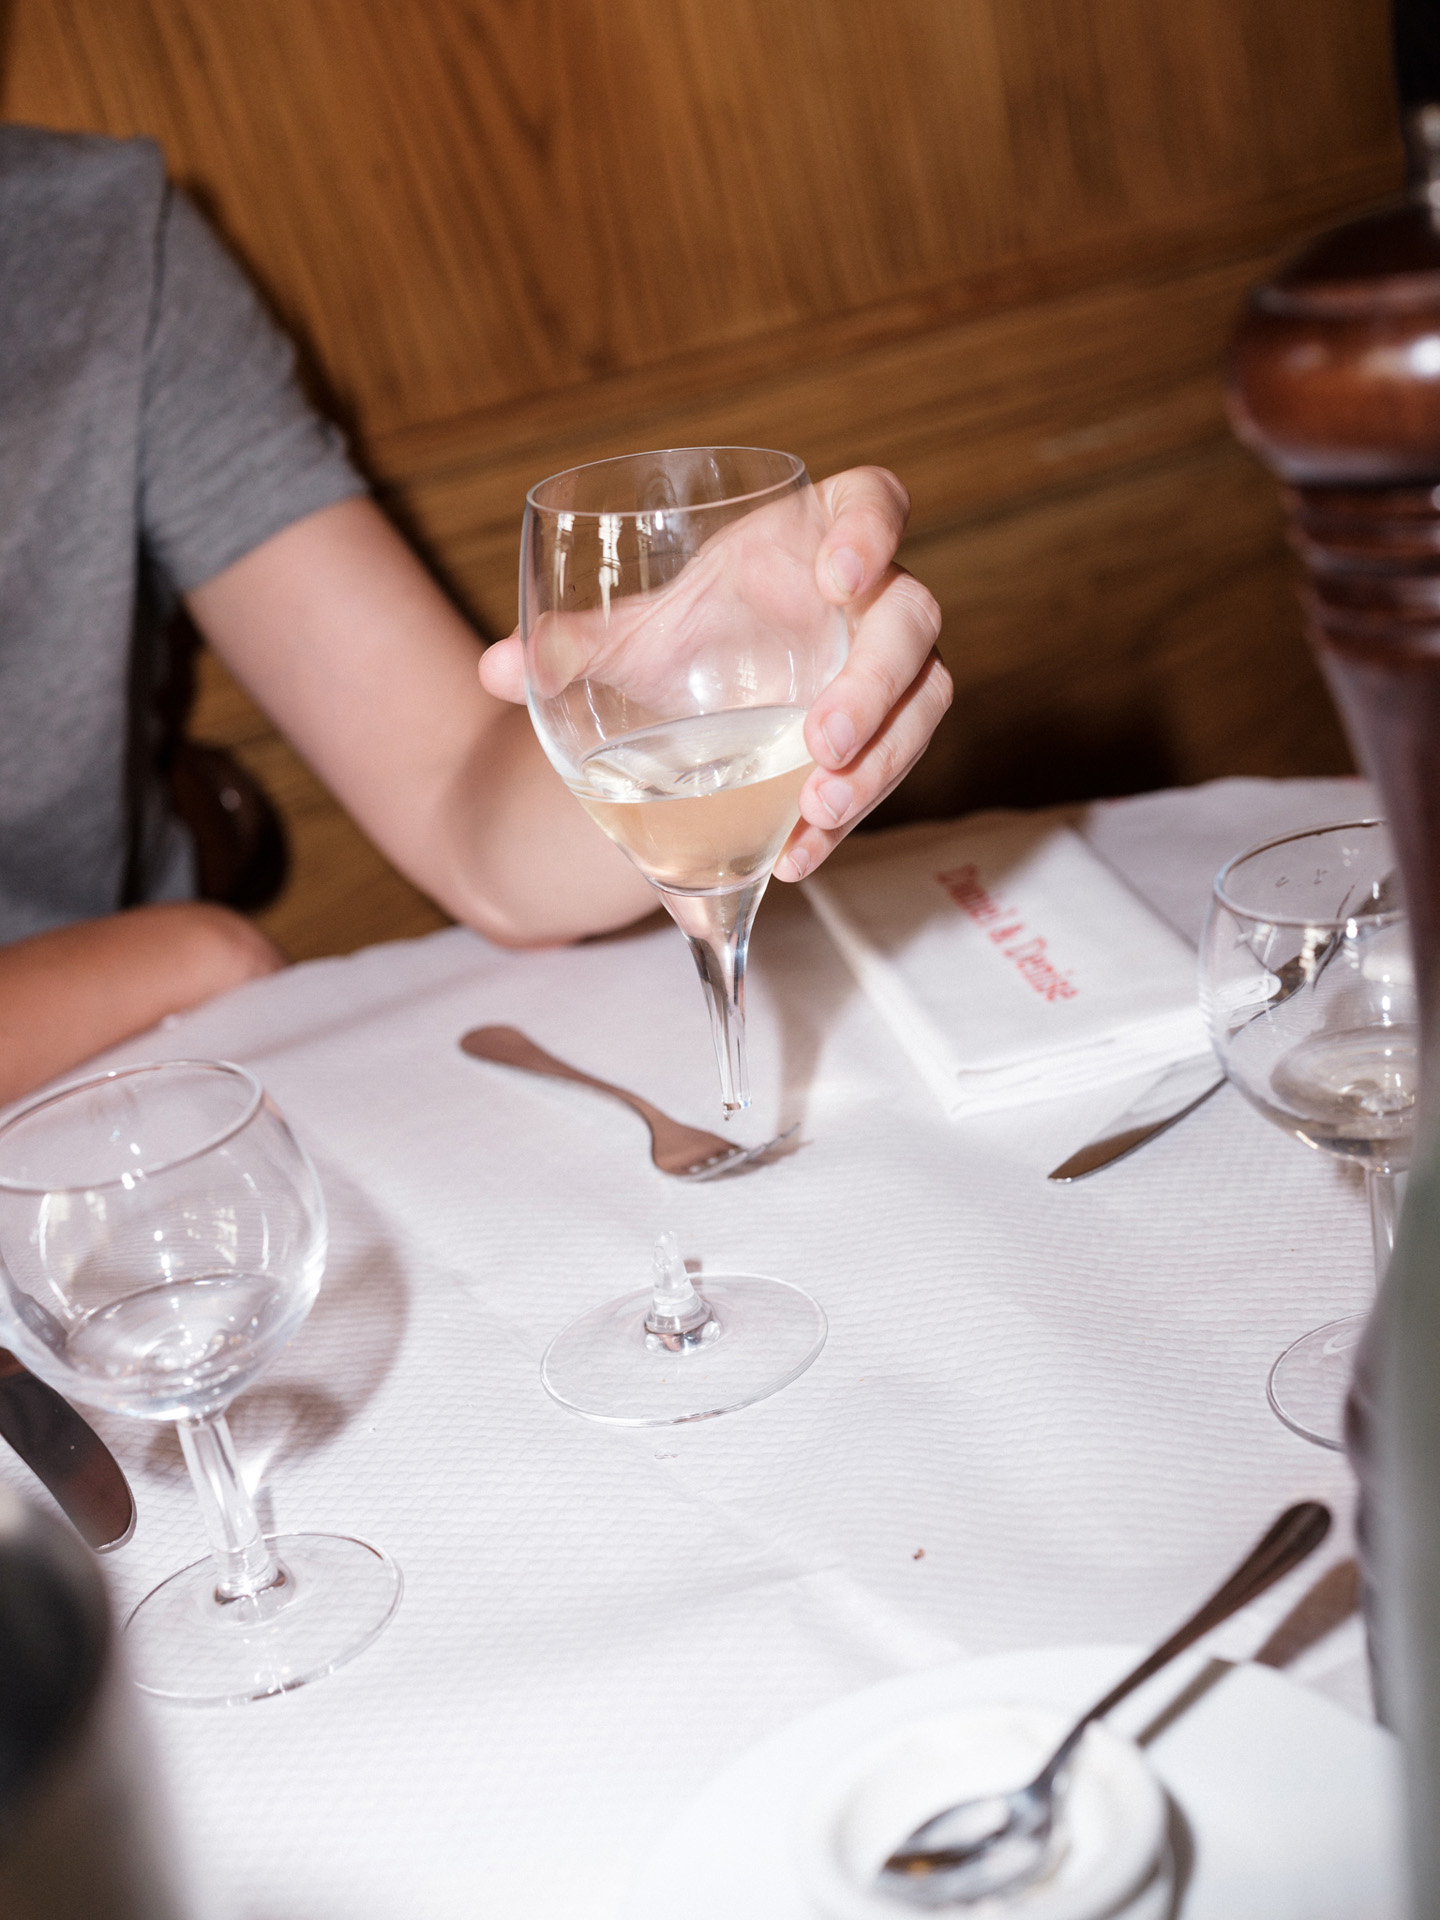 man holding glass of white wine in restaurant by Alexi Hobbs in Auvergne for Reflets de France